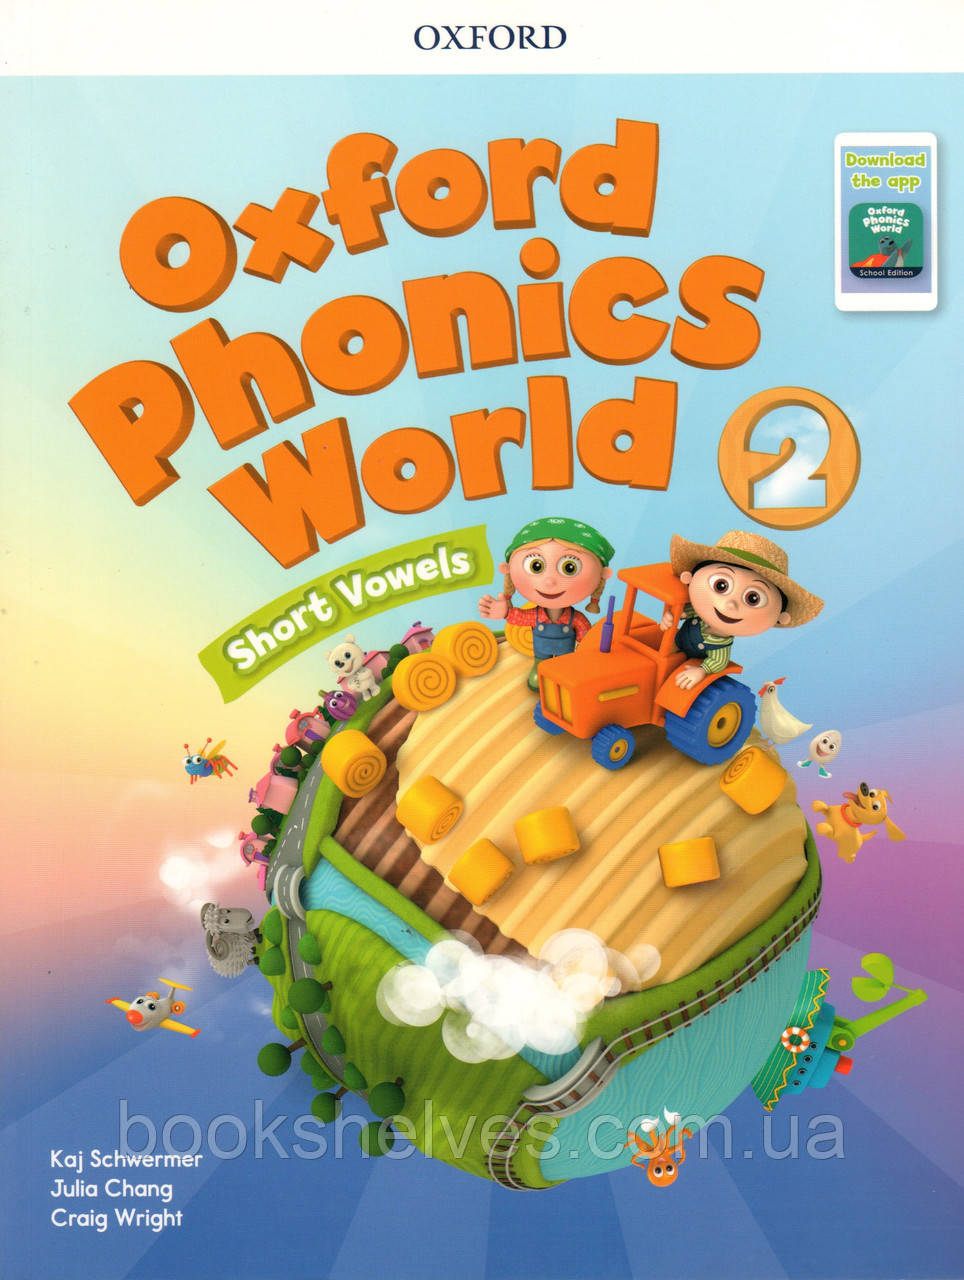 Учебник Oxford Phonics World 2 Student's book + App Pack